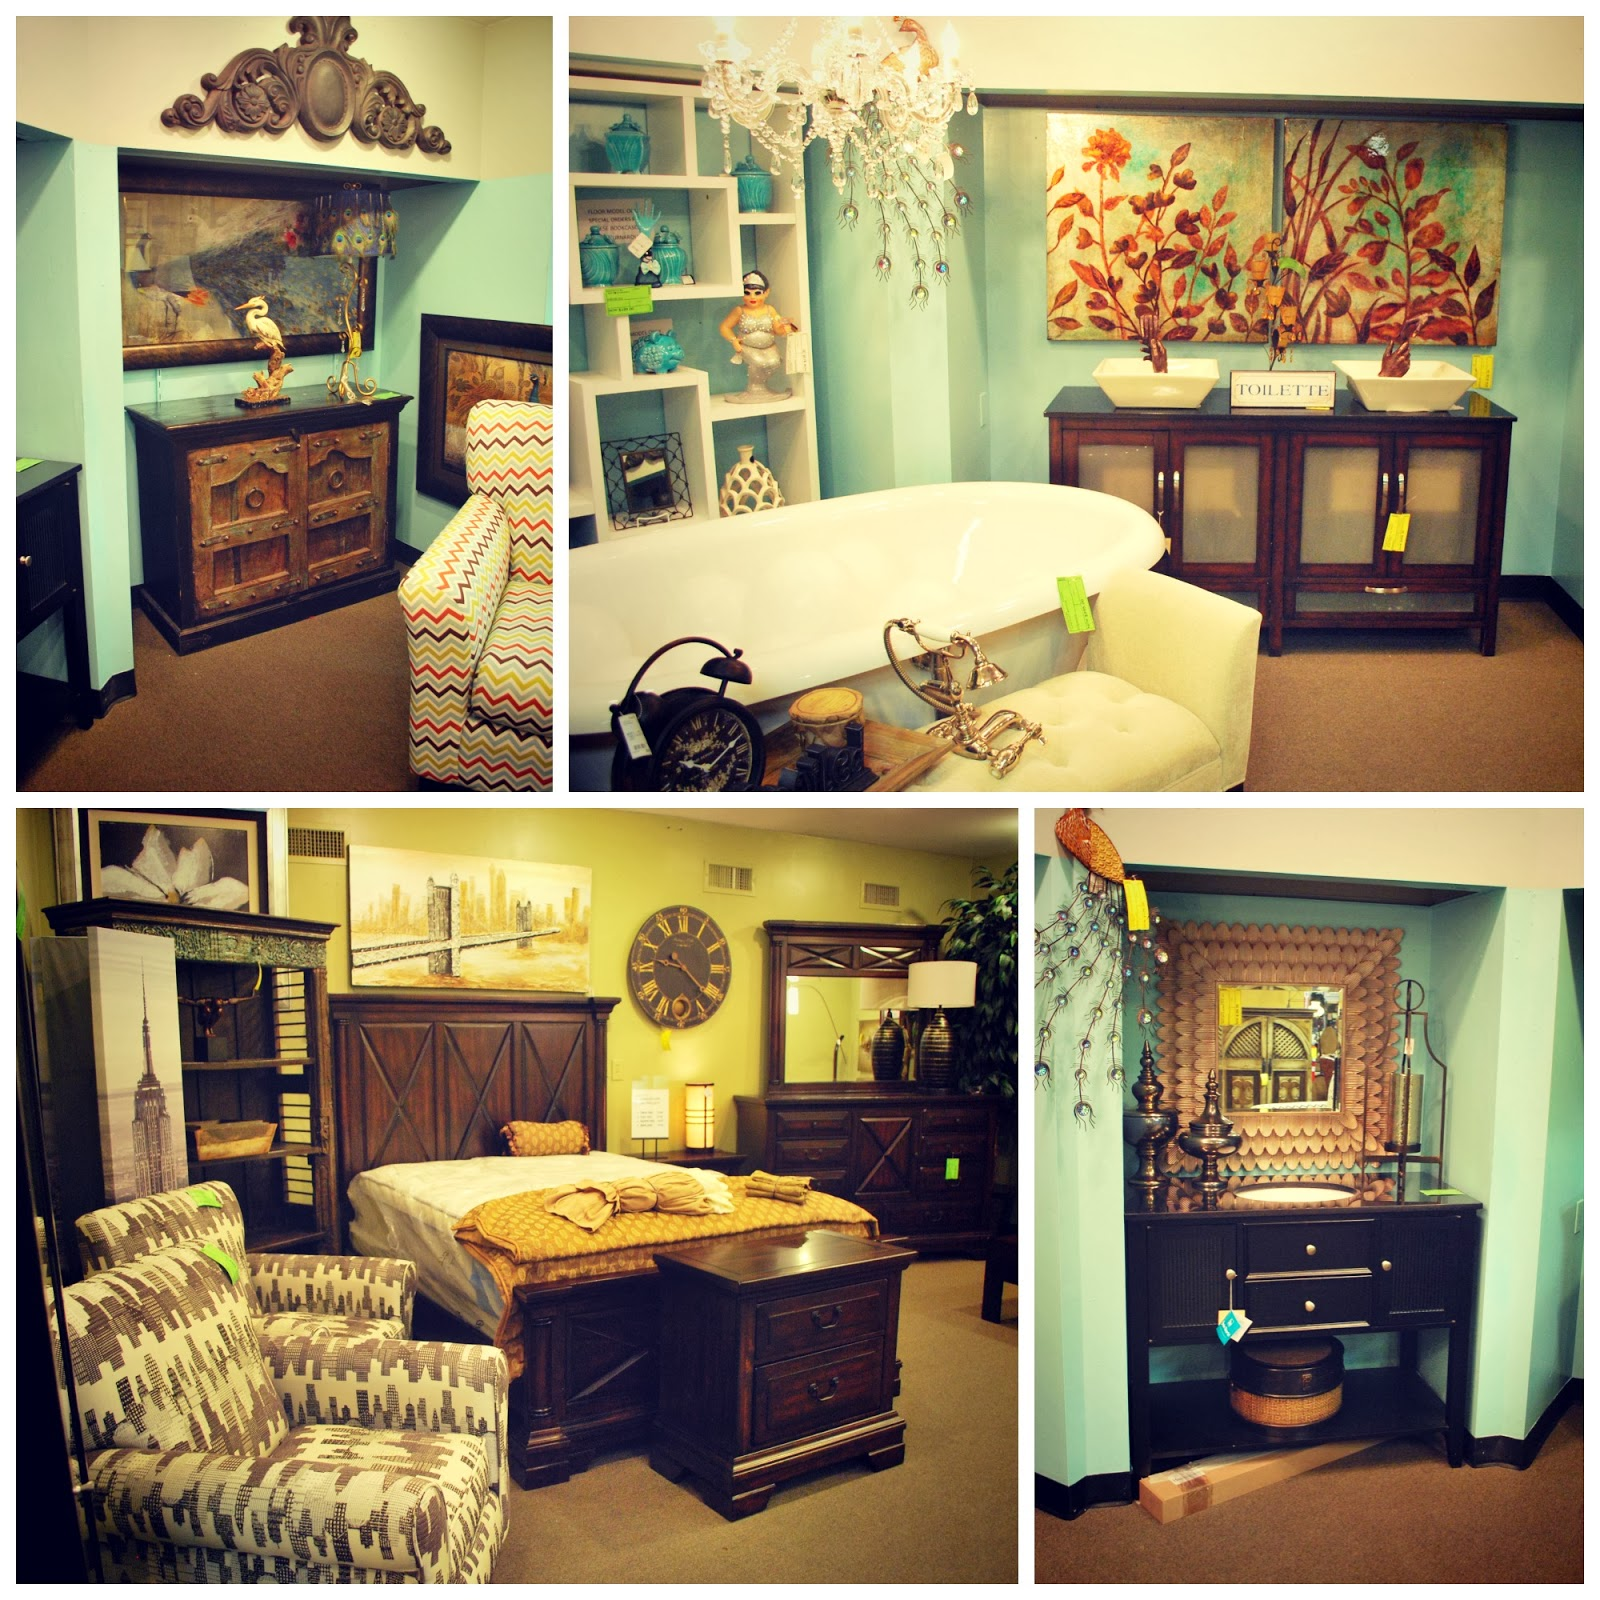 Atlanta Consignment Stores How To Sell Furniture And Home Decor Items On Consignment Hot Tips